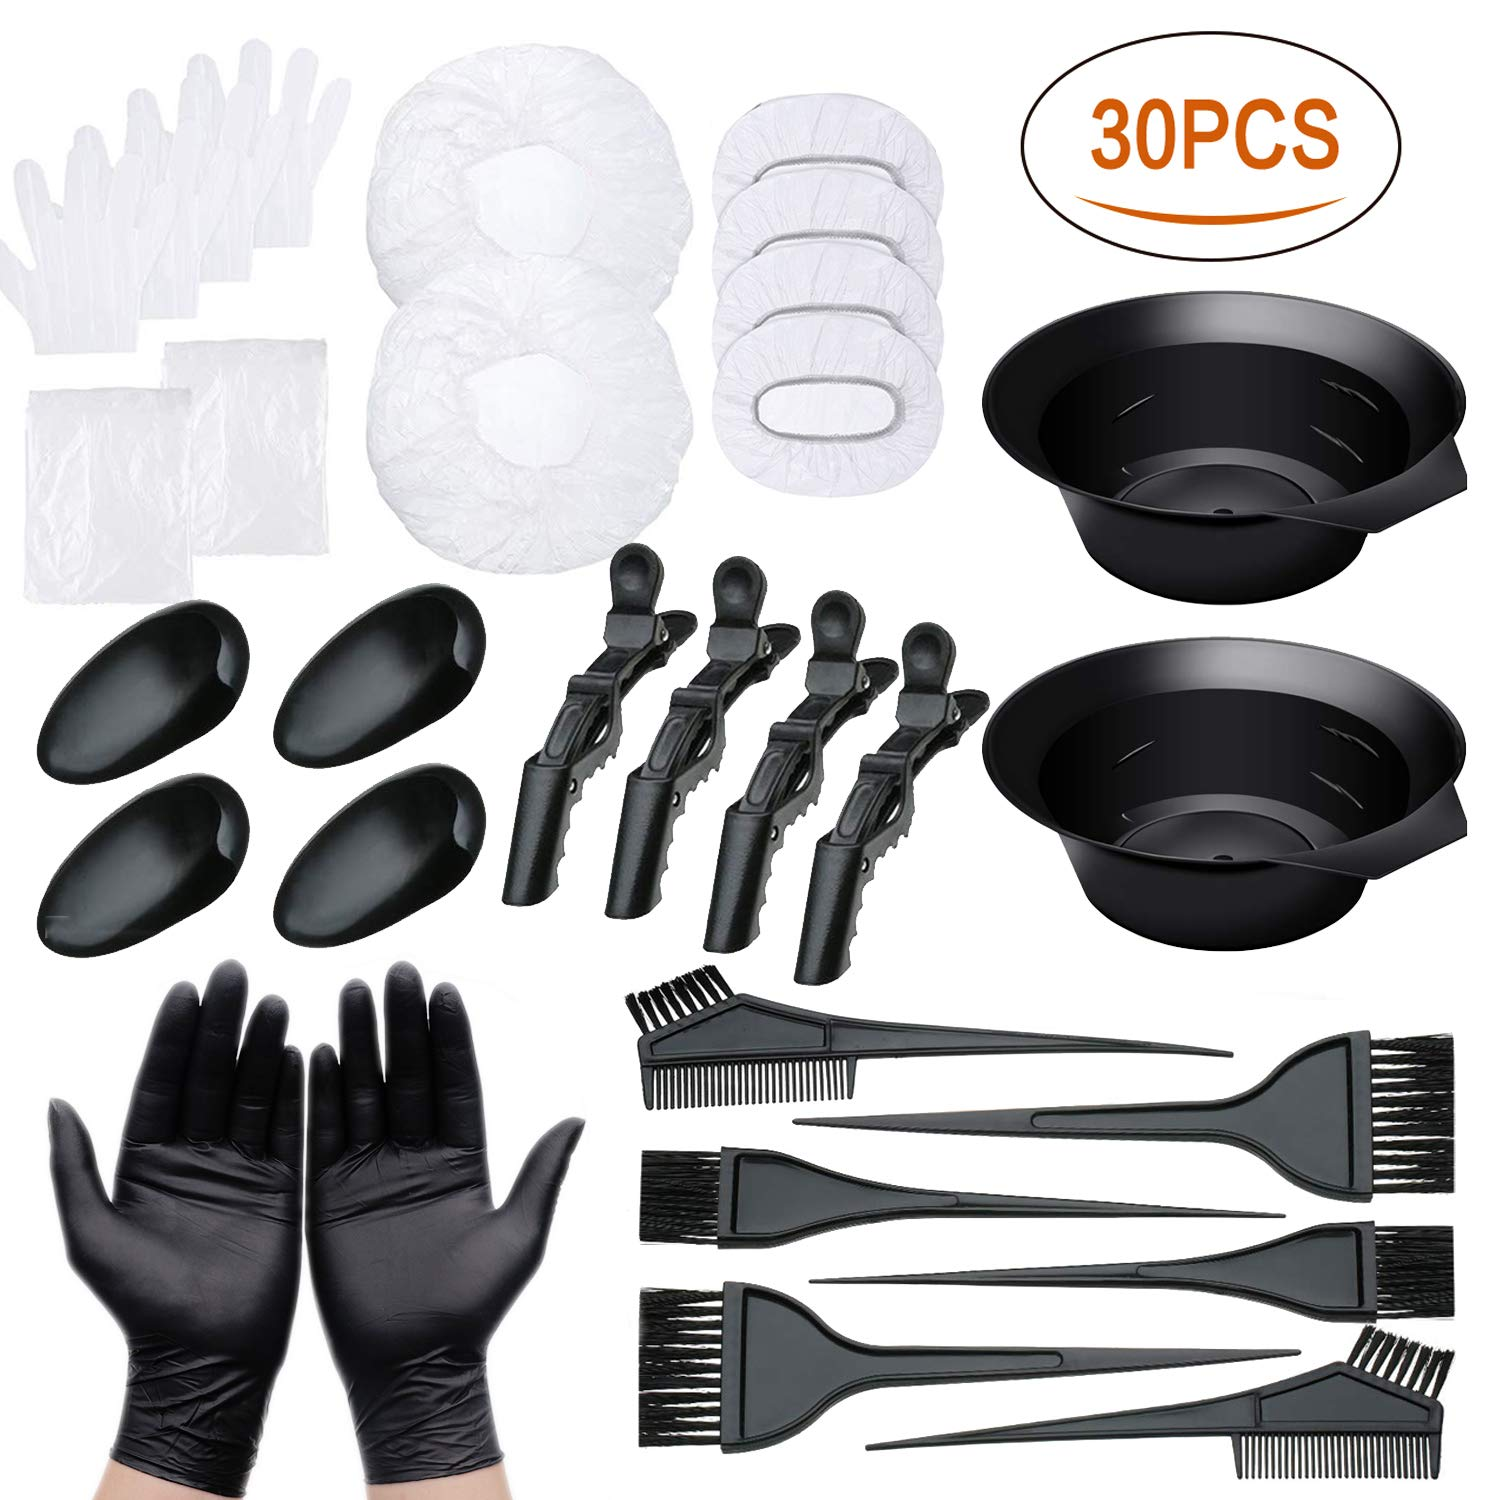 30 PCS Hair Dye Color Kit, Hair Tinting Bowl, Dye Brush, Ear Cover, Cape, Disposable Gloves for Salon Hair Dye Home Use Coloring DIY Bleaching Hair Dryers by Tabiger